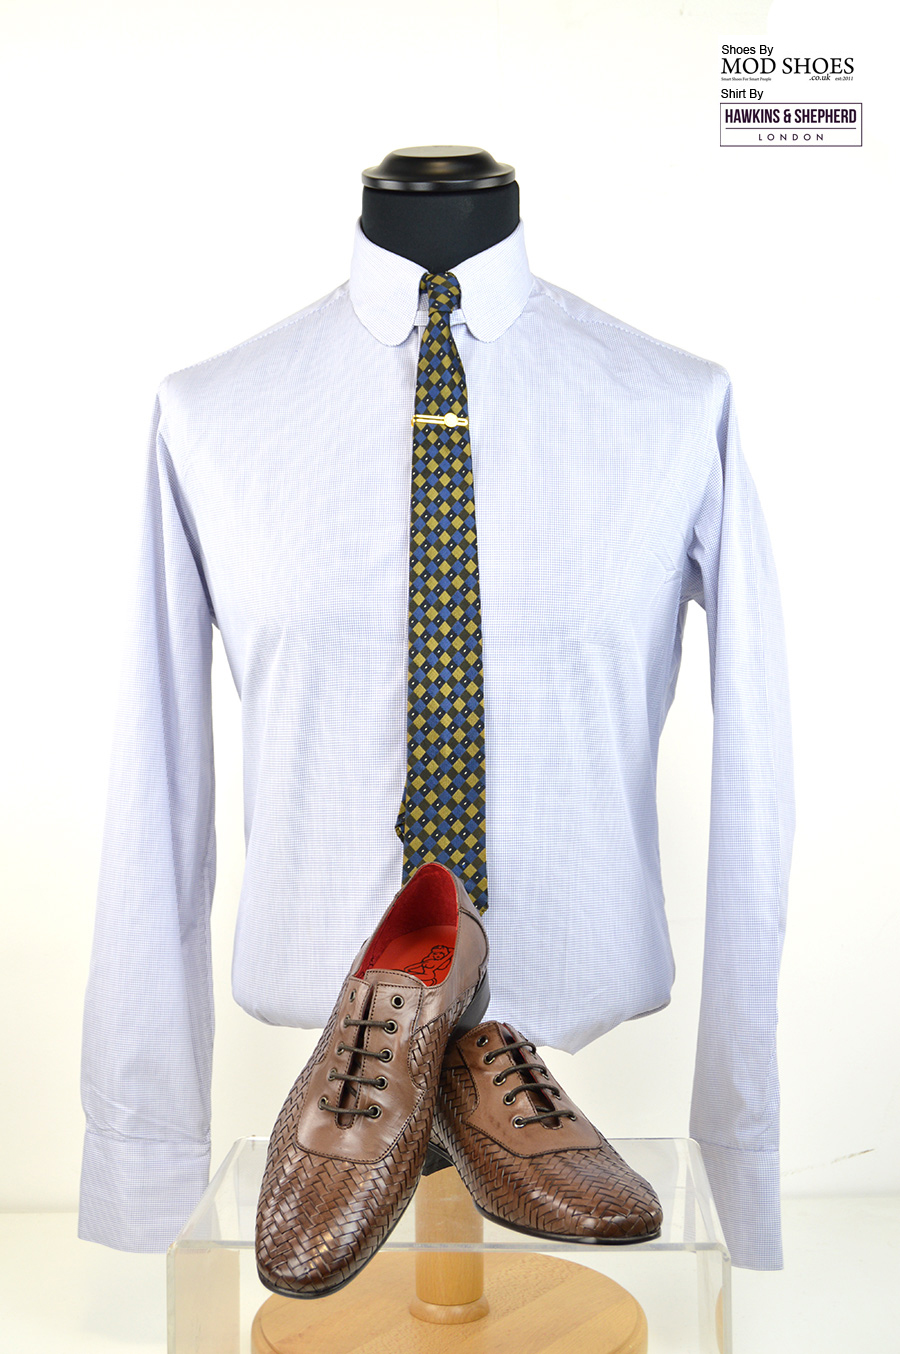 modshoes-jeffery-west-weavers-with-hawkins-sheperds-shirt